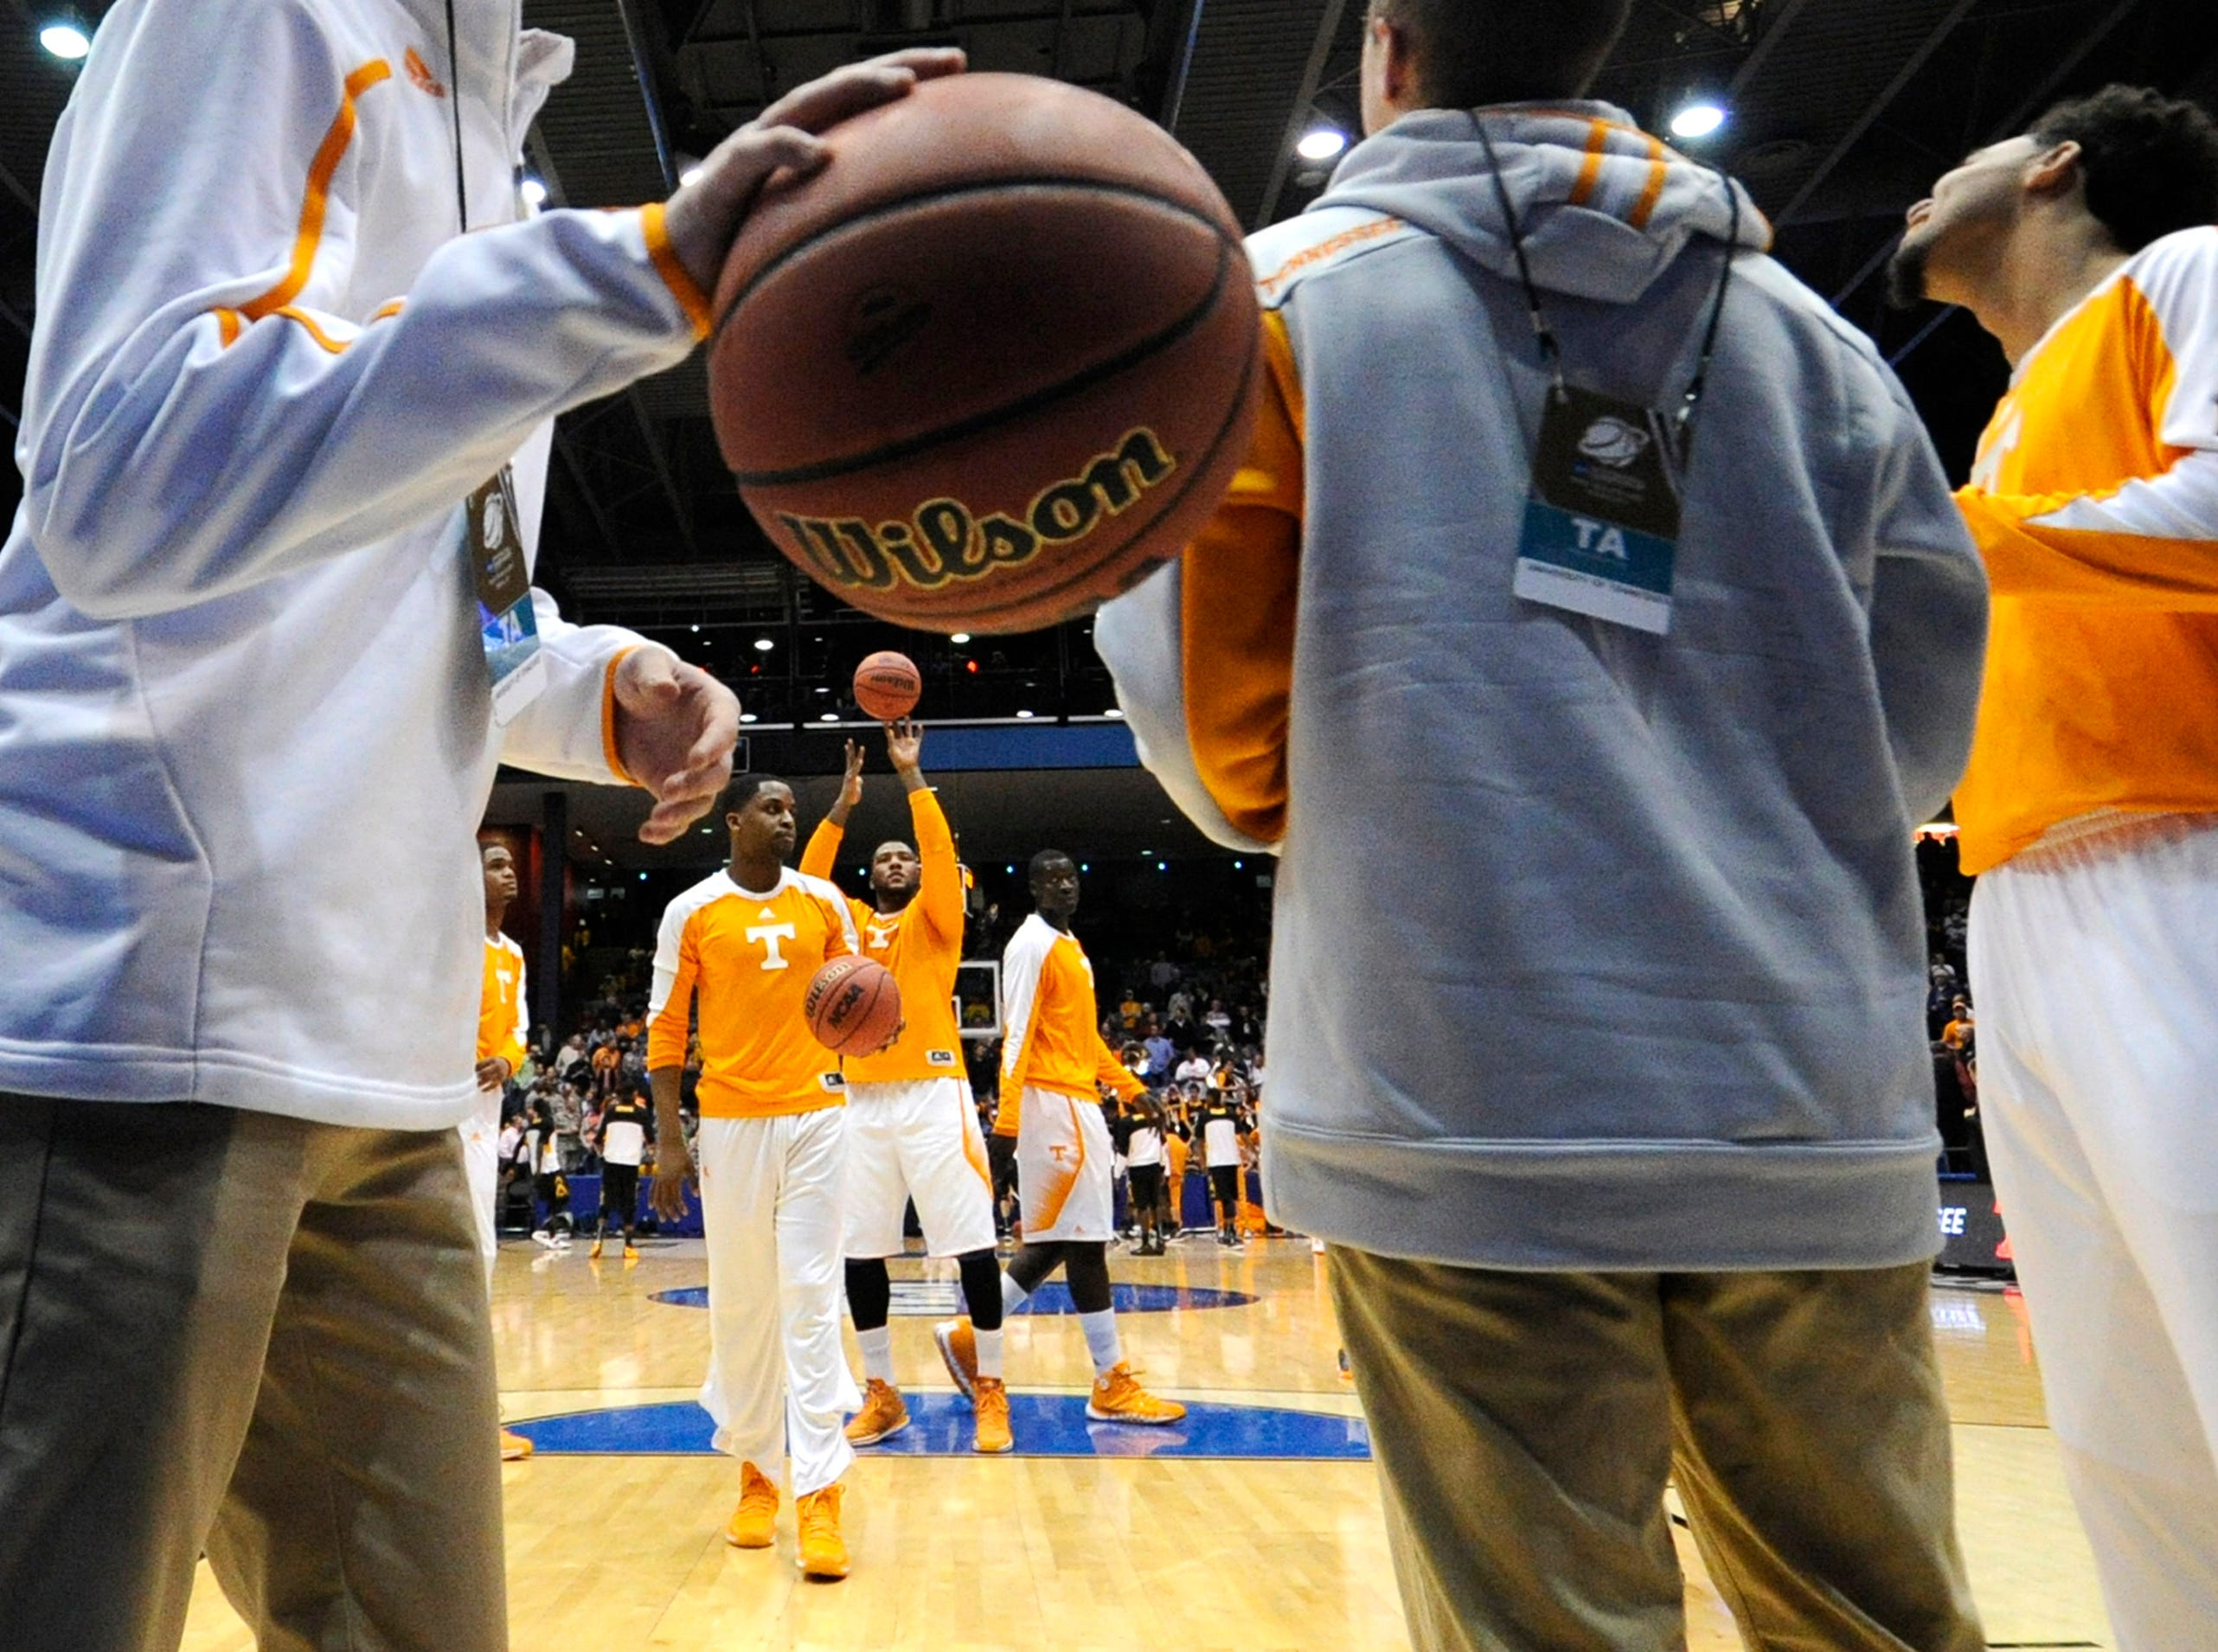 Tennessee players warm up before an NCAA tournament First Four play-in game against Iowa at the University of Dayton Arena in Dayton, Ohio on Wednesday, March 19, 2014.